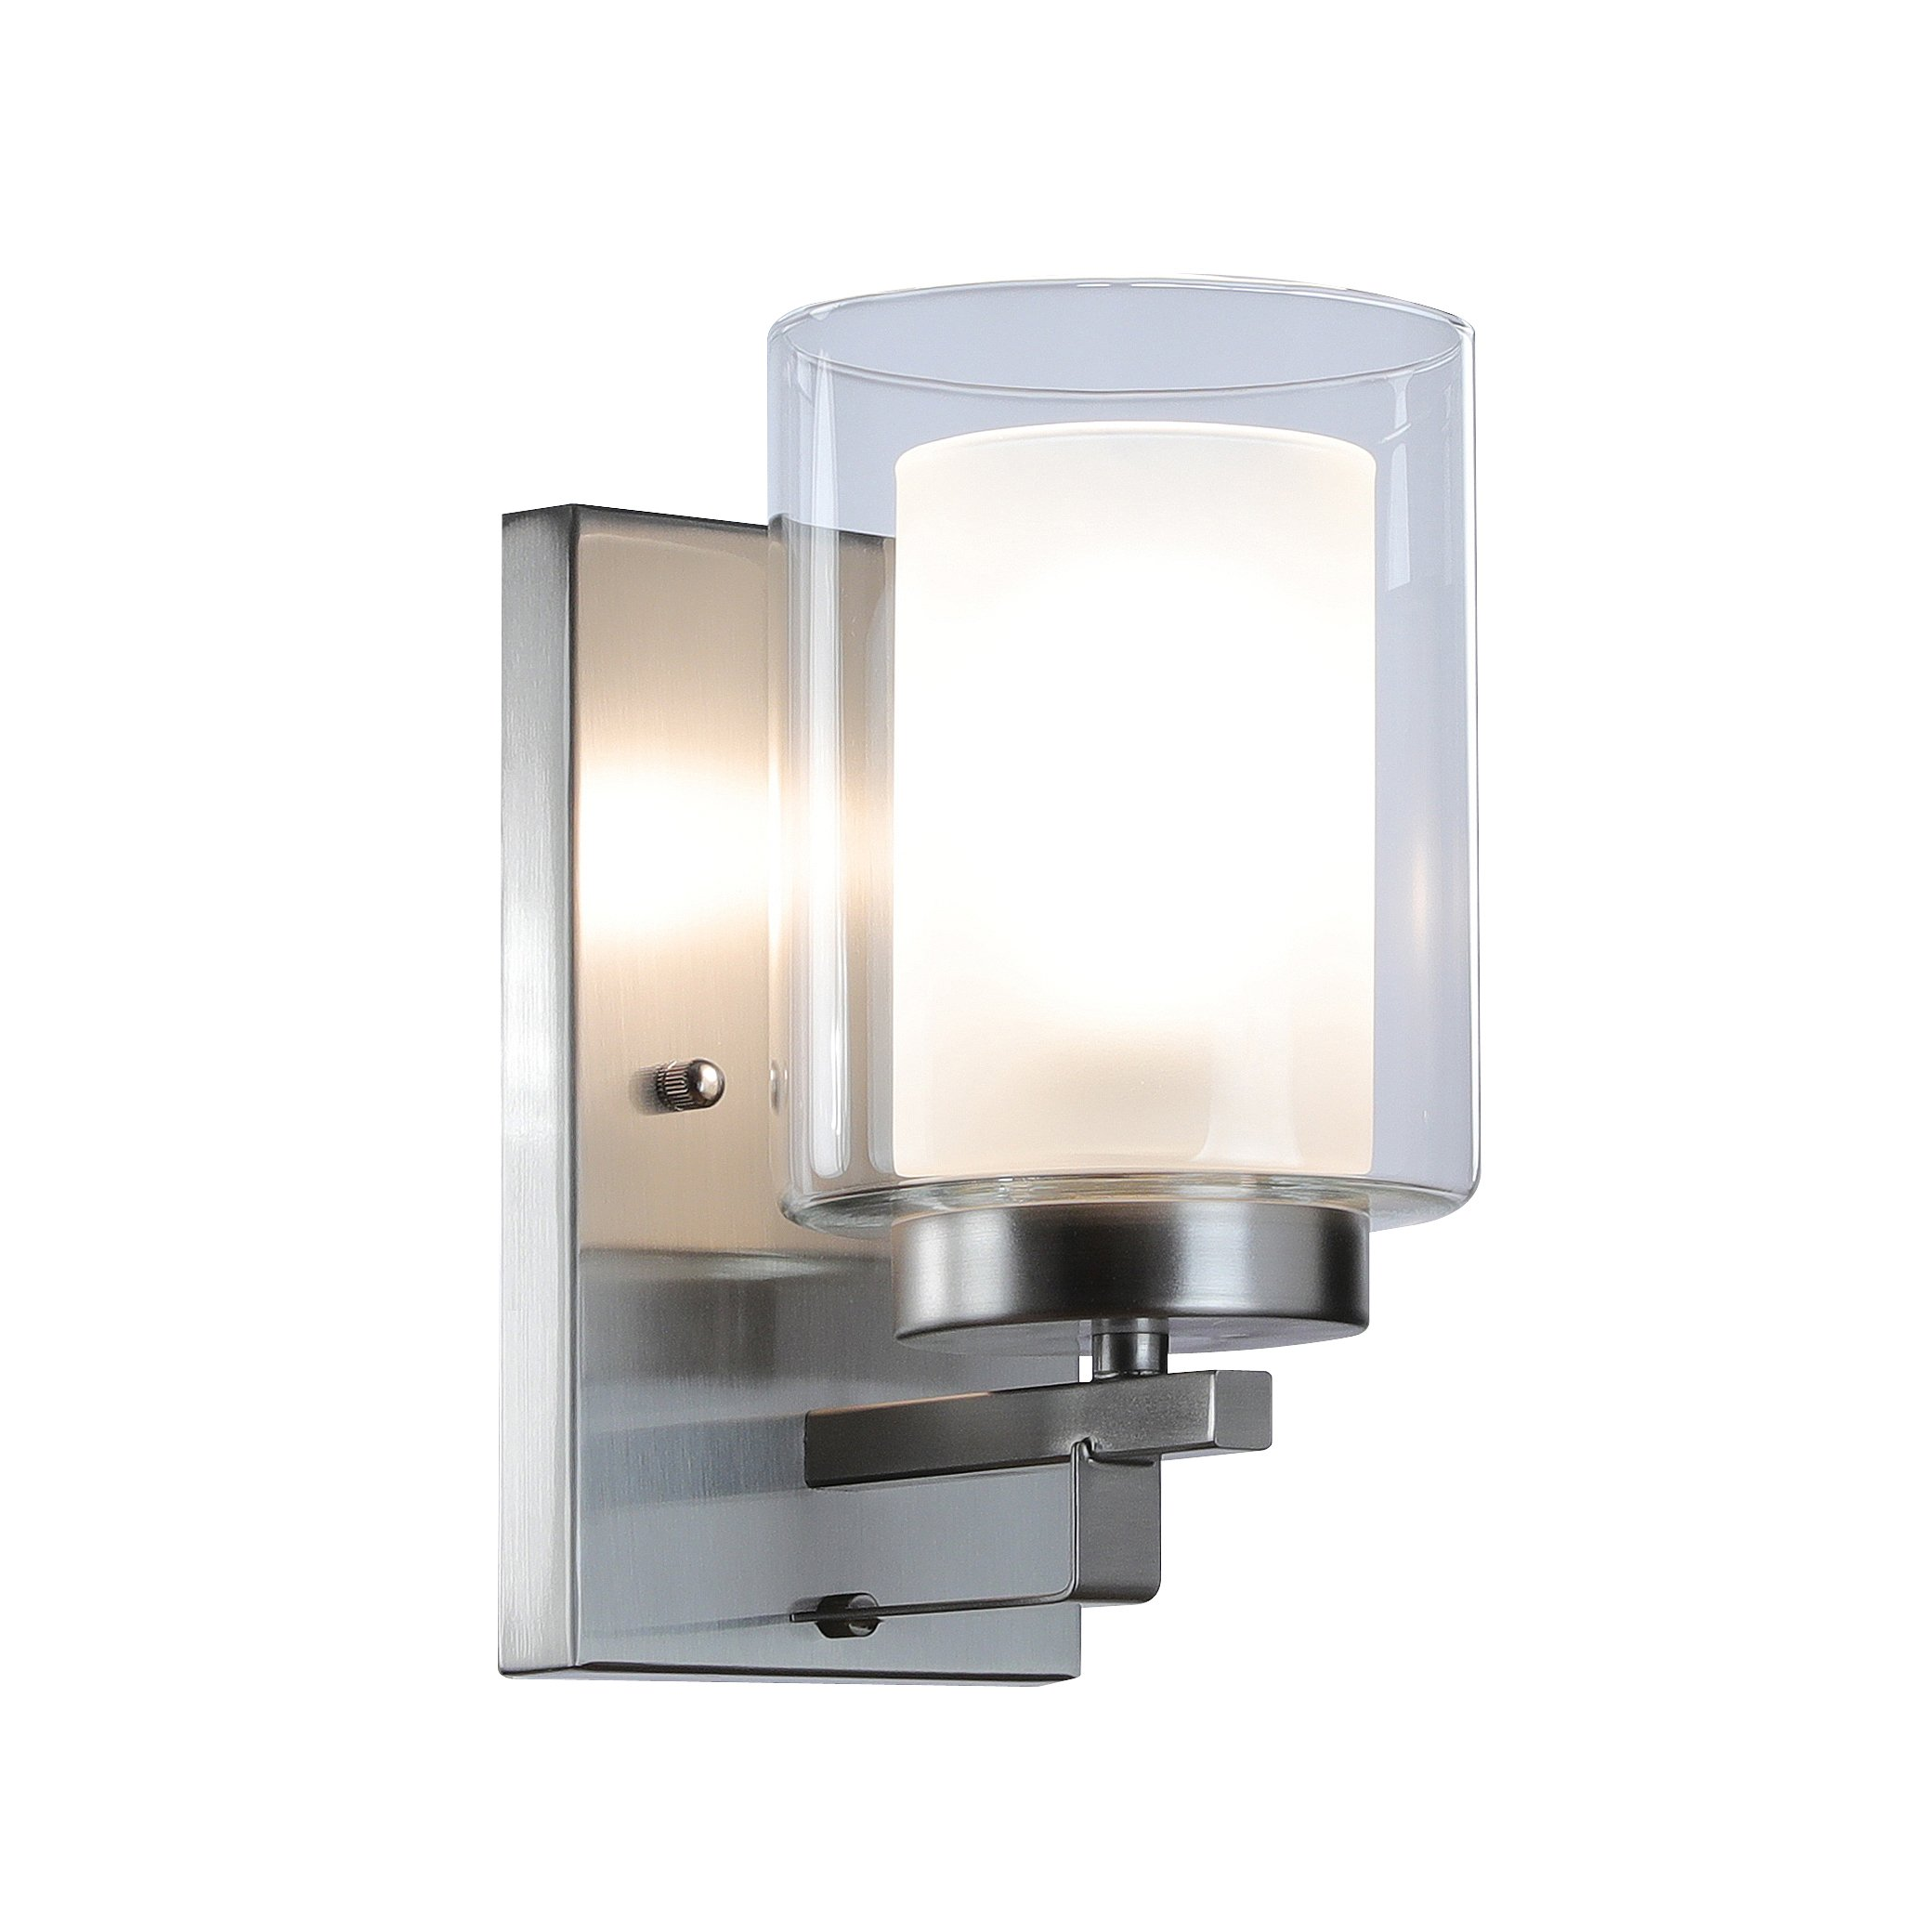 Wall Light 1 Light Bathroom Vanity Lighting with Dual Glass Shade in Brushed Nickel Indoor Modern Wall Mount Light Suitable for Bathroom & Living Room XiNBEi-Lighting XB-W1195-1-BN